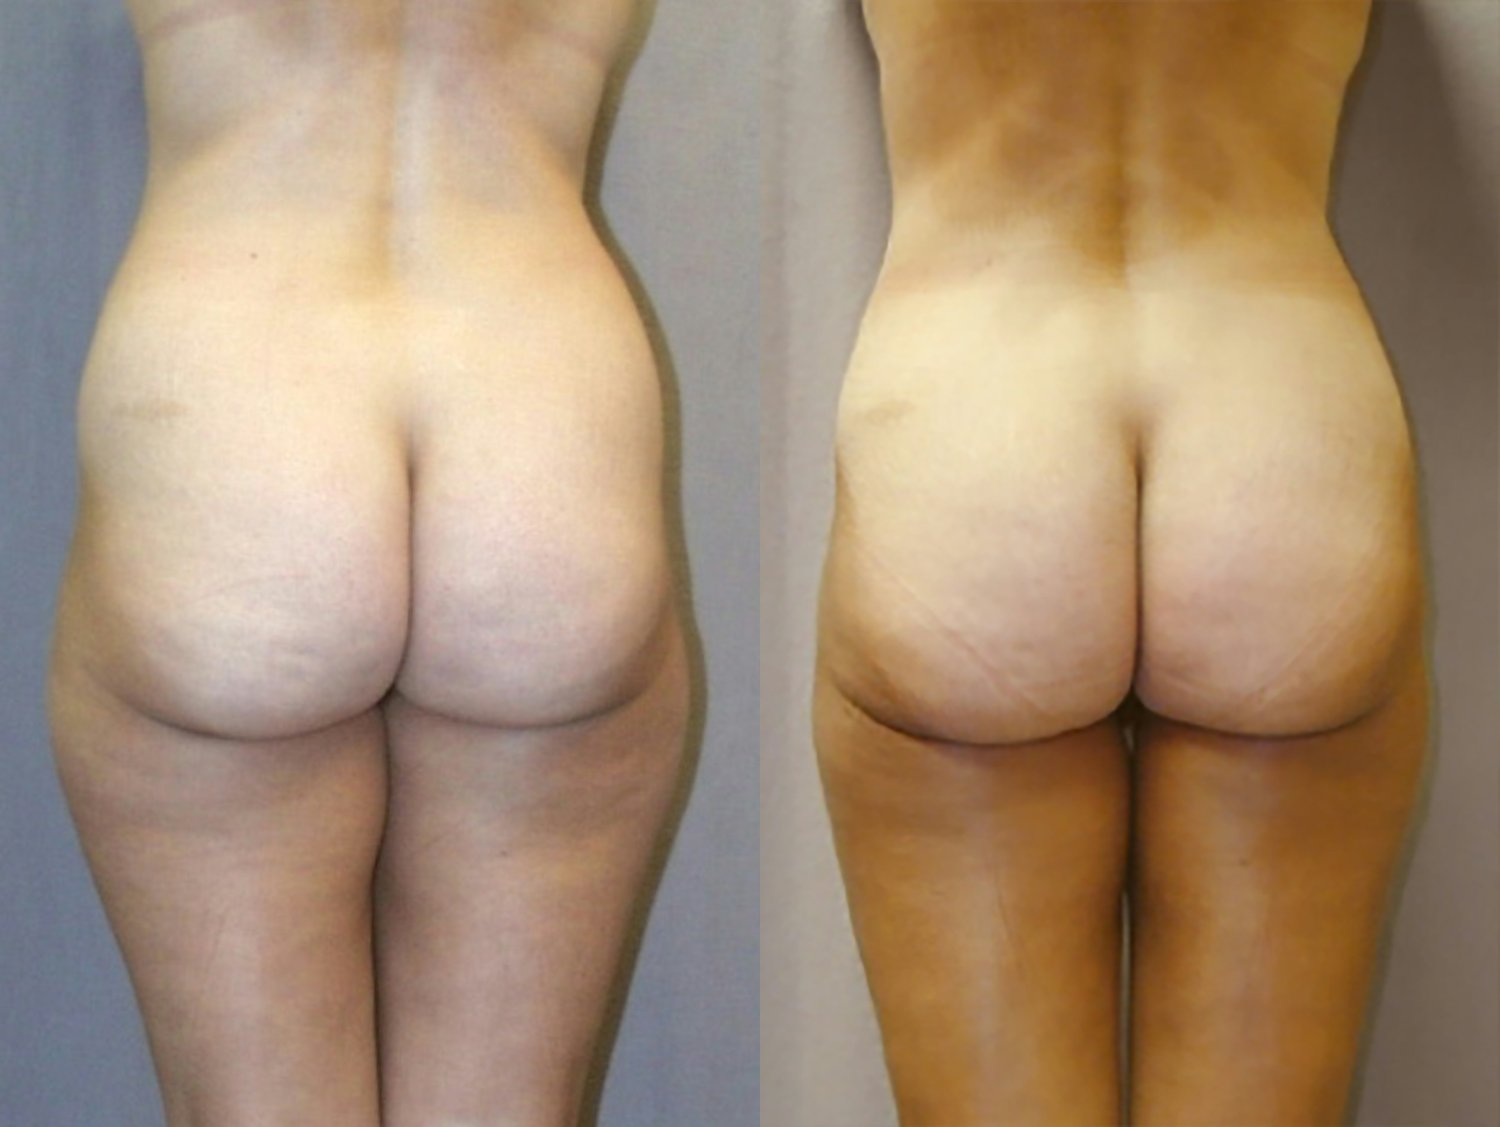 Liposuction hips outer and inner thighs, front